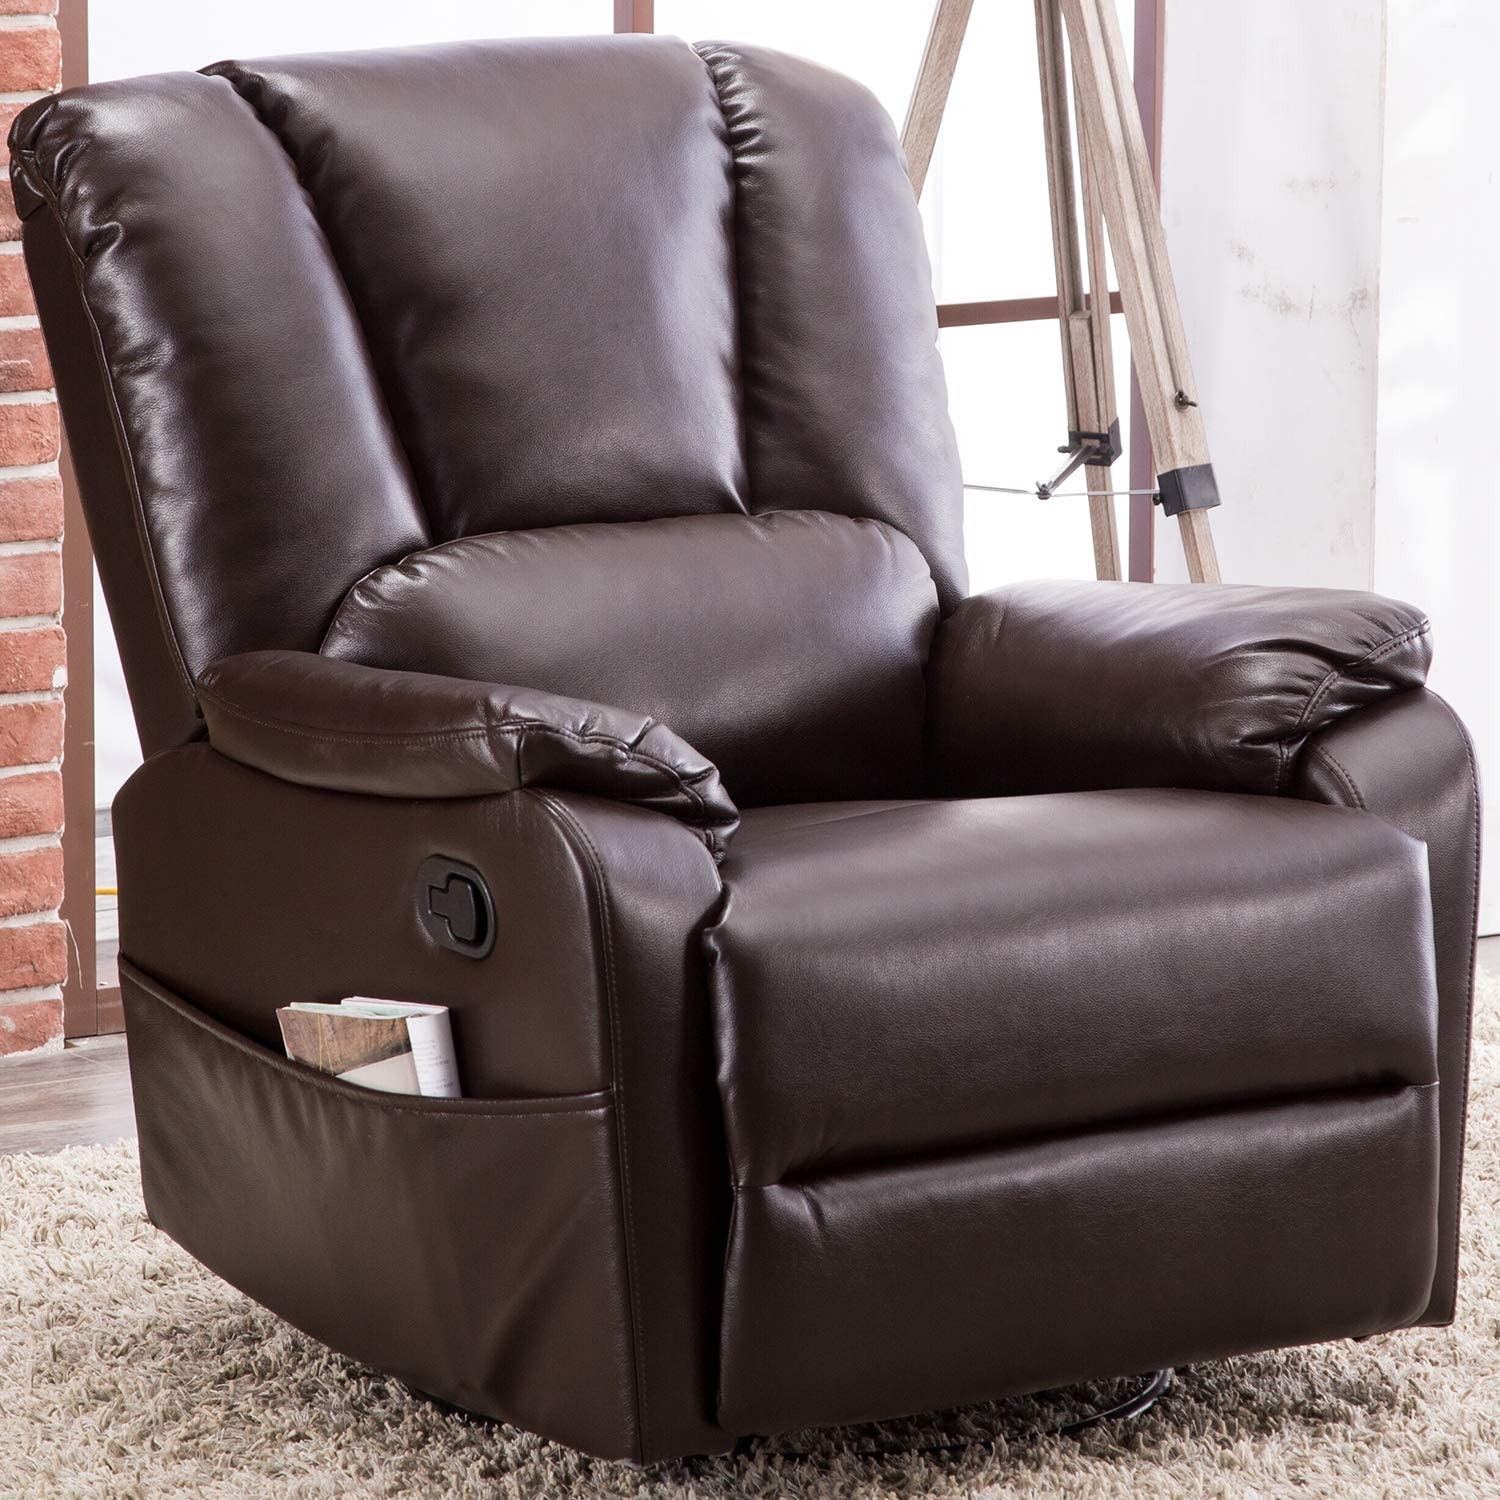 Bonzy Home Air Leather Recliner Chair Overstuffed Manual Recliner Faux Leather 360° Swivel Glider Classic Recliner Chair Home Theater Seating,